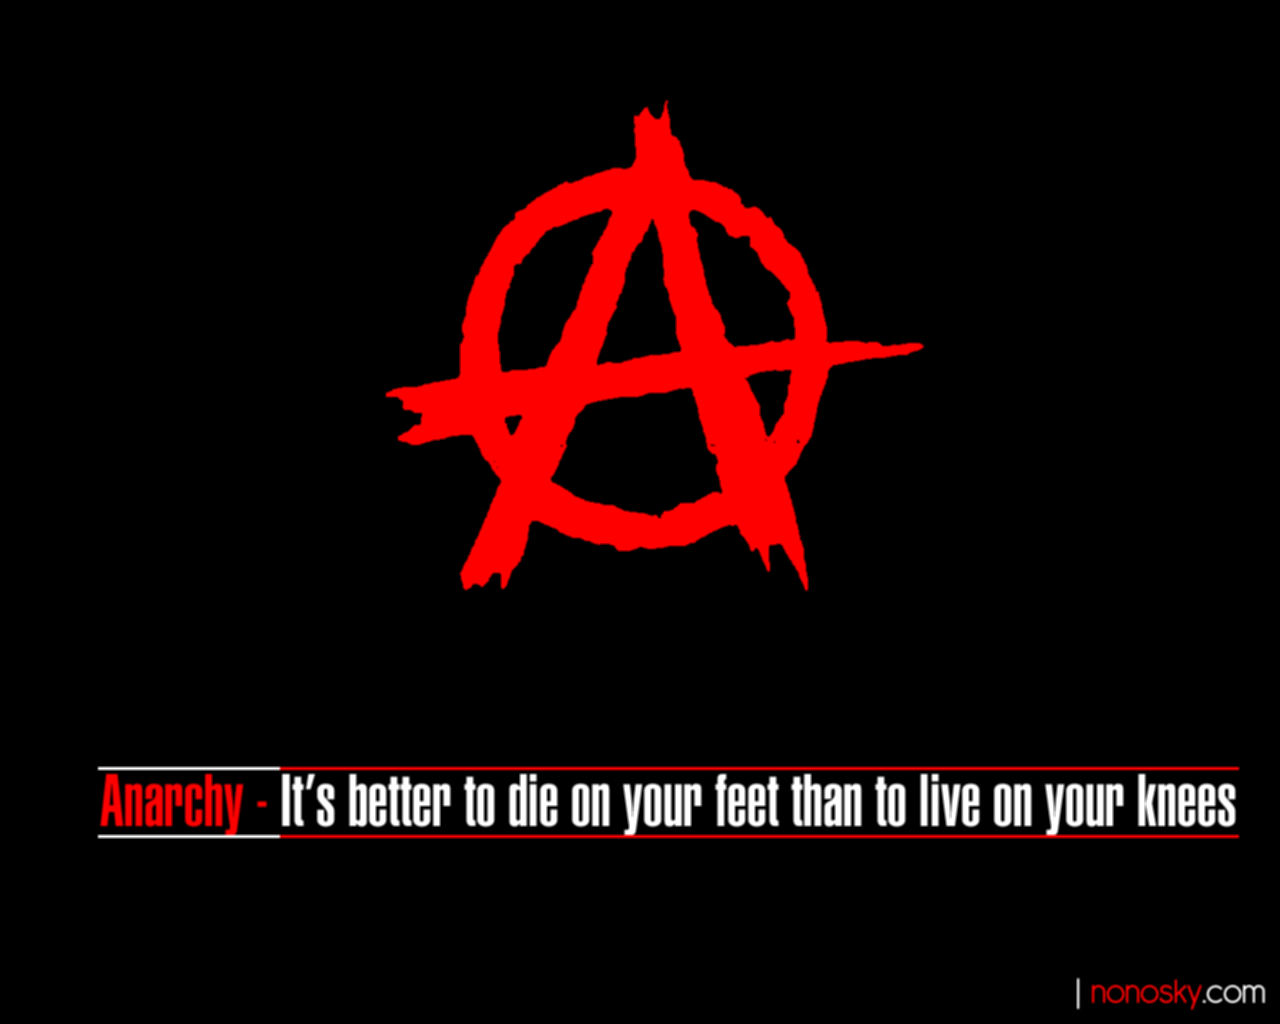 New 500 screensaver Anarchy screensaver 1280x1024